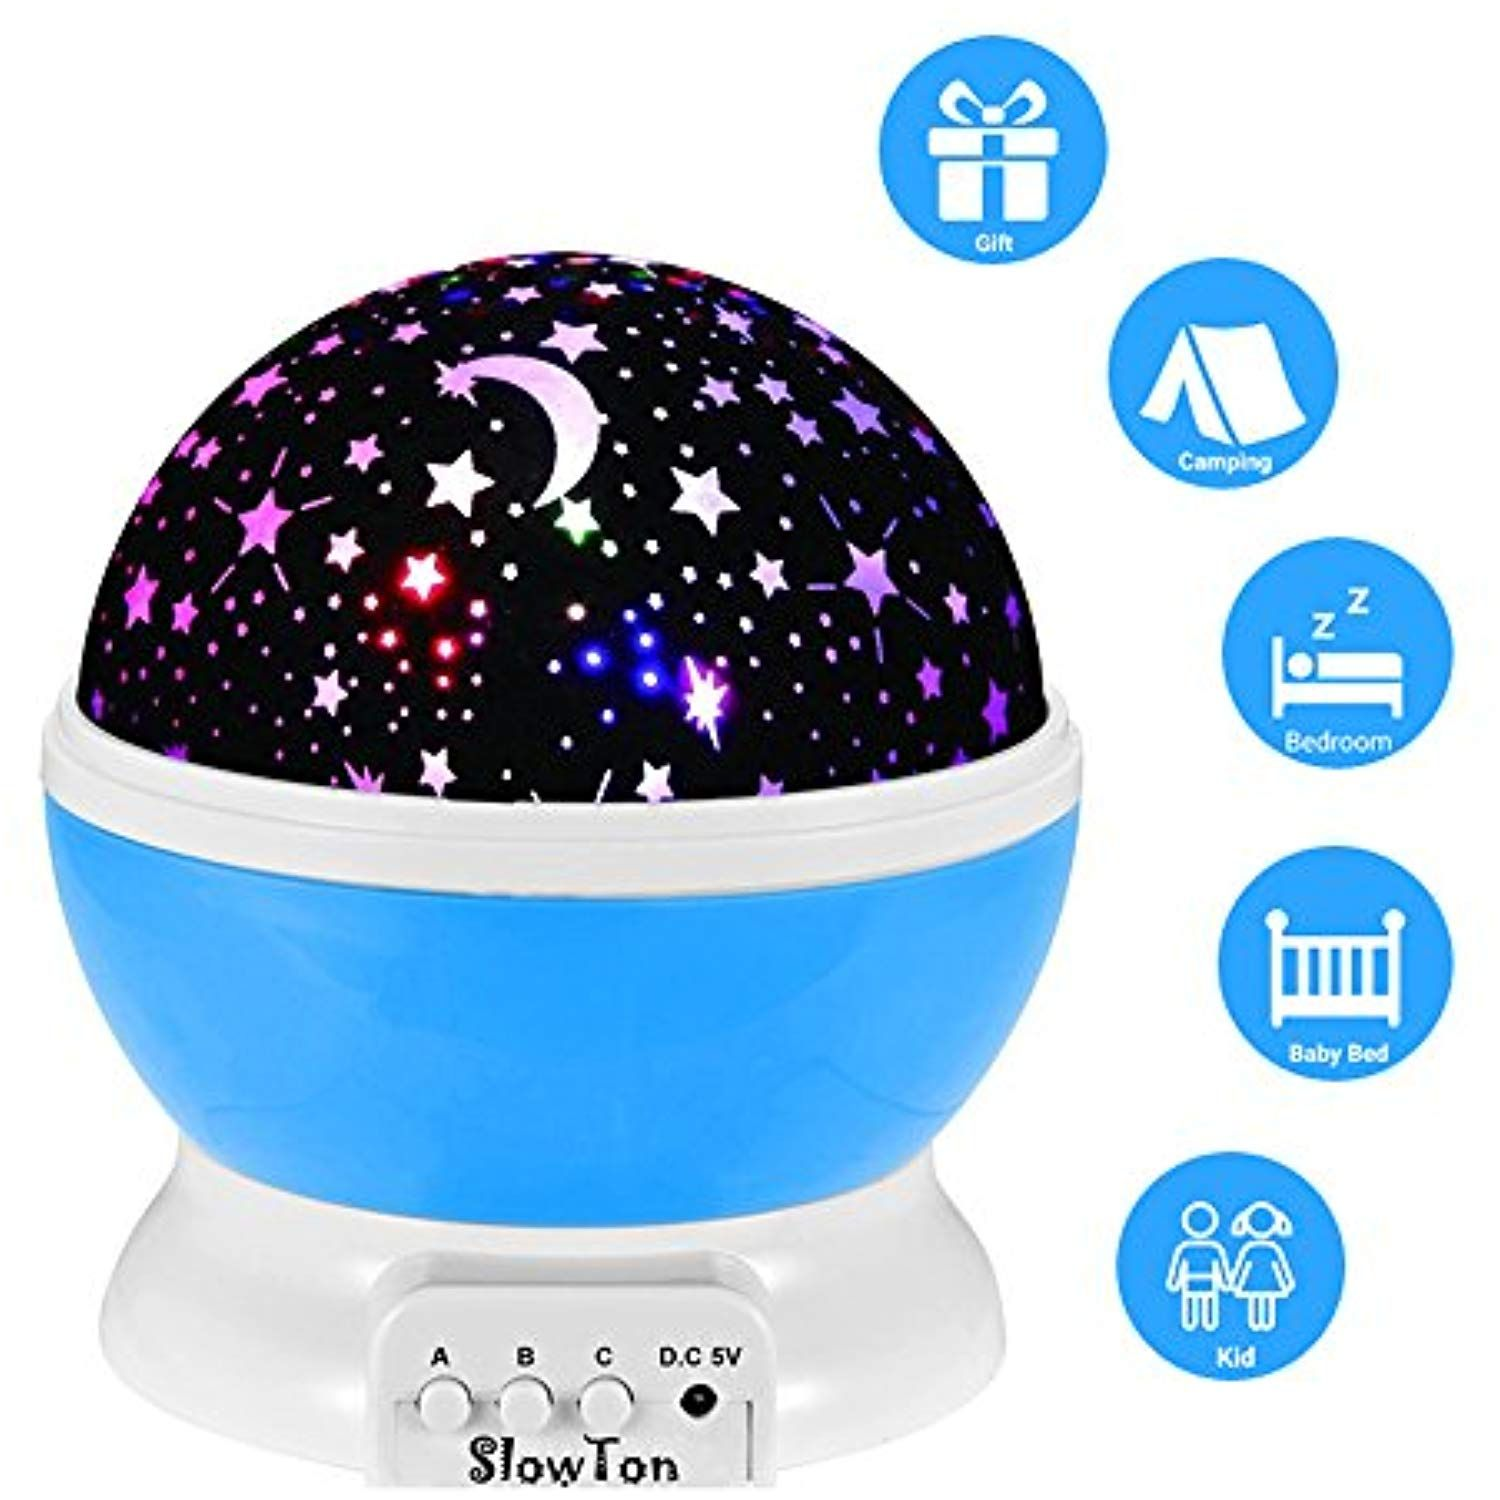 Slowton Star Night Light Projector For Kids Starry Lighting Lamp Rotating Bedside Rest Light Baby Sleep Soothers Colorful Led Moon Star For Bab Star Night Light